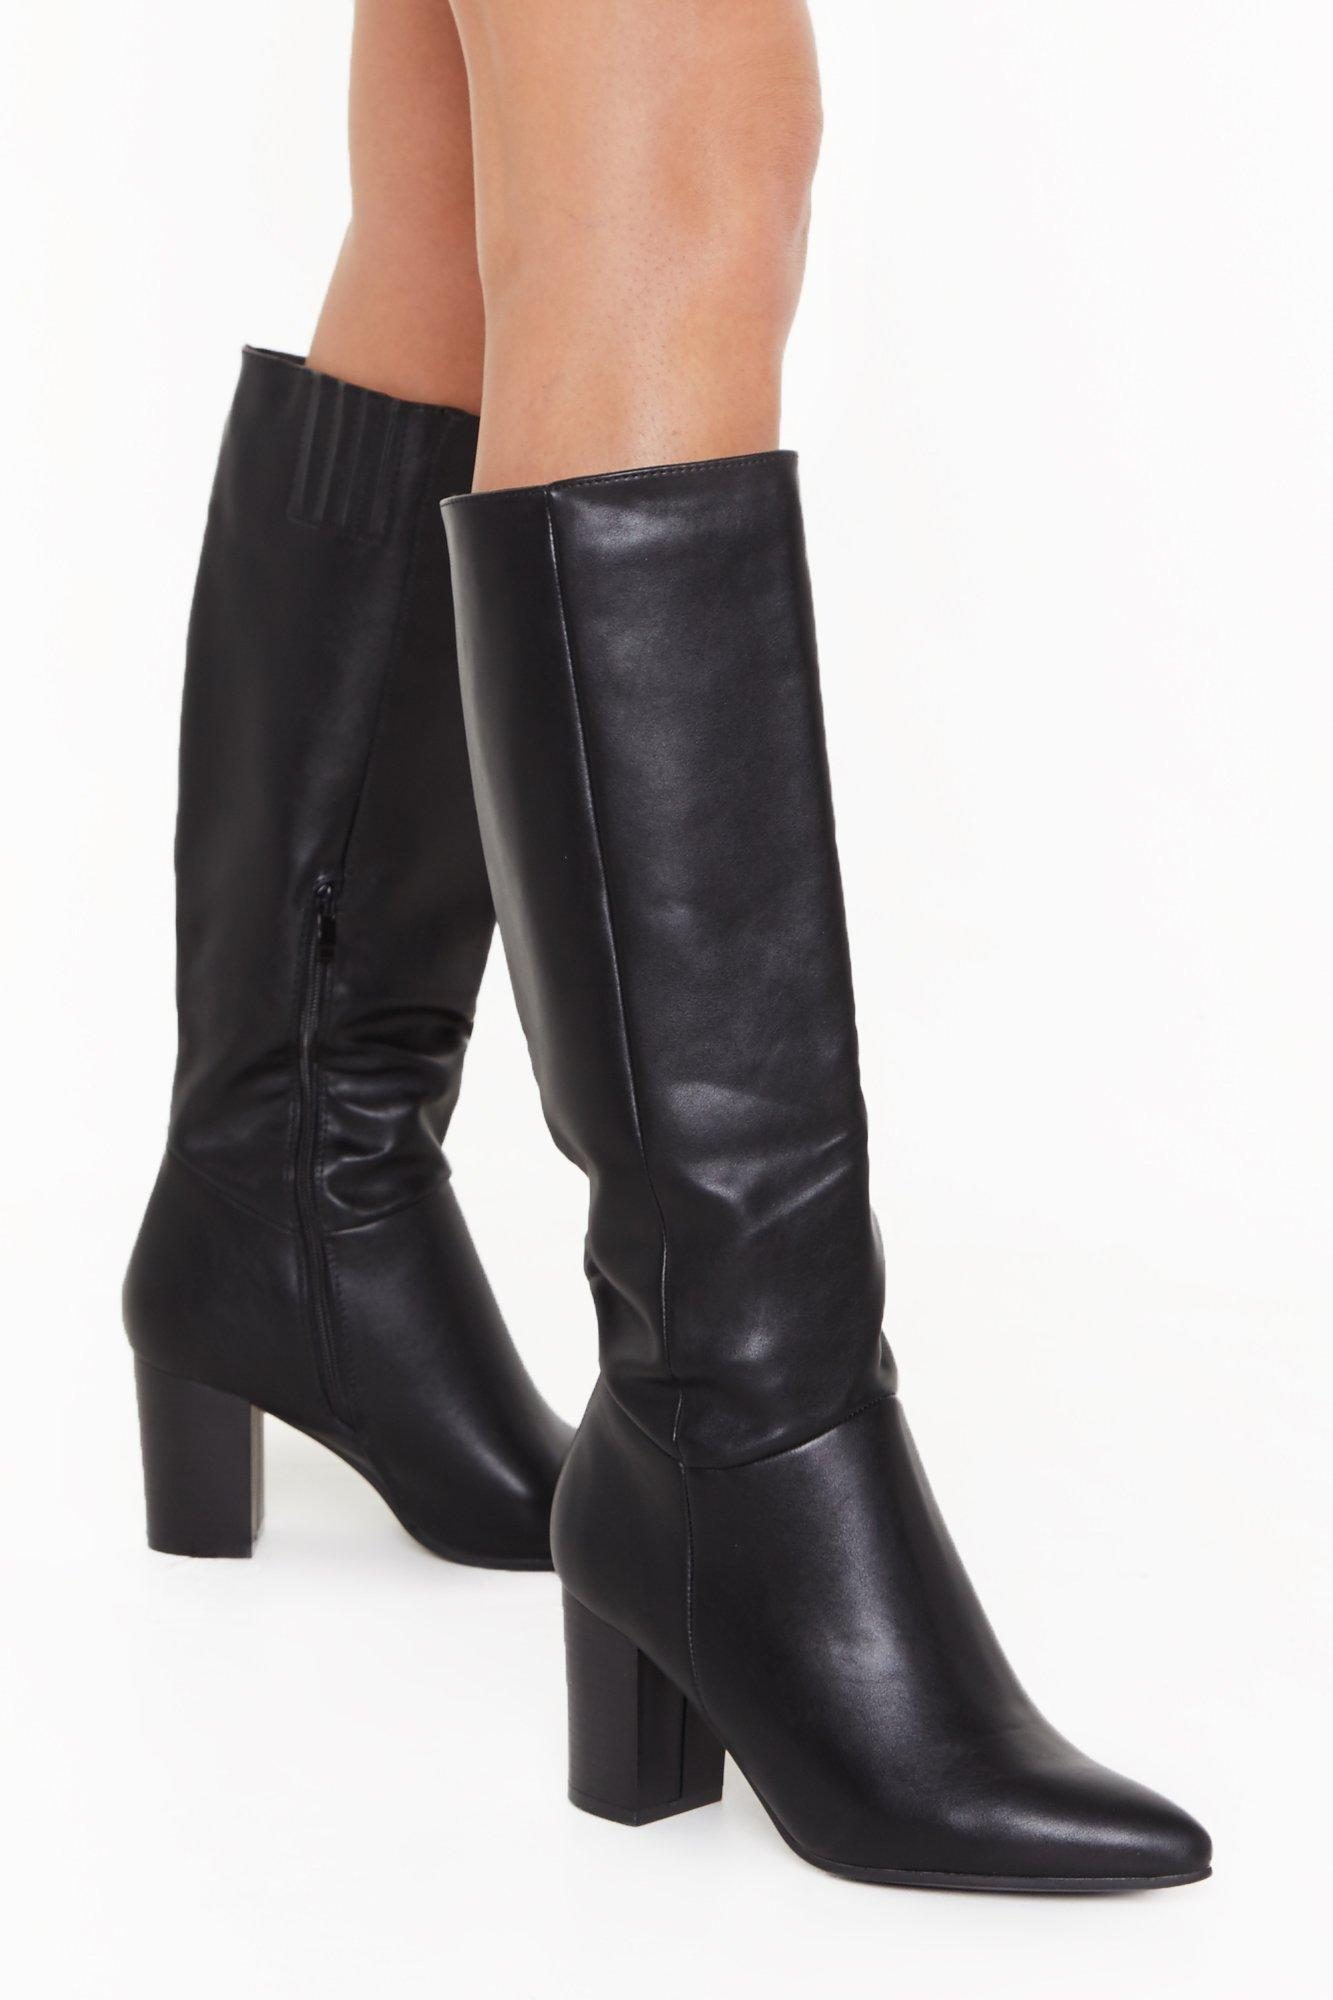 Stay Groovy Heeled Knee-High Boots | Nasty Gal